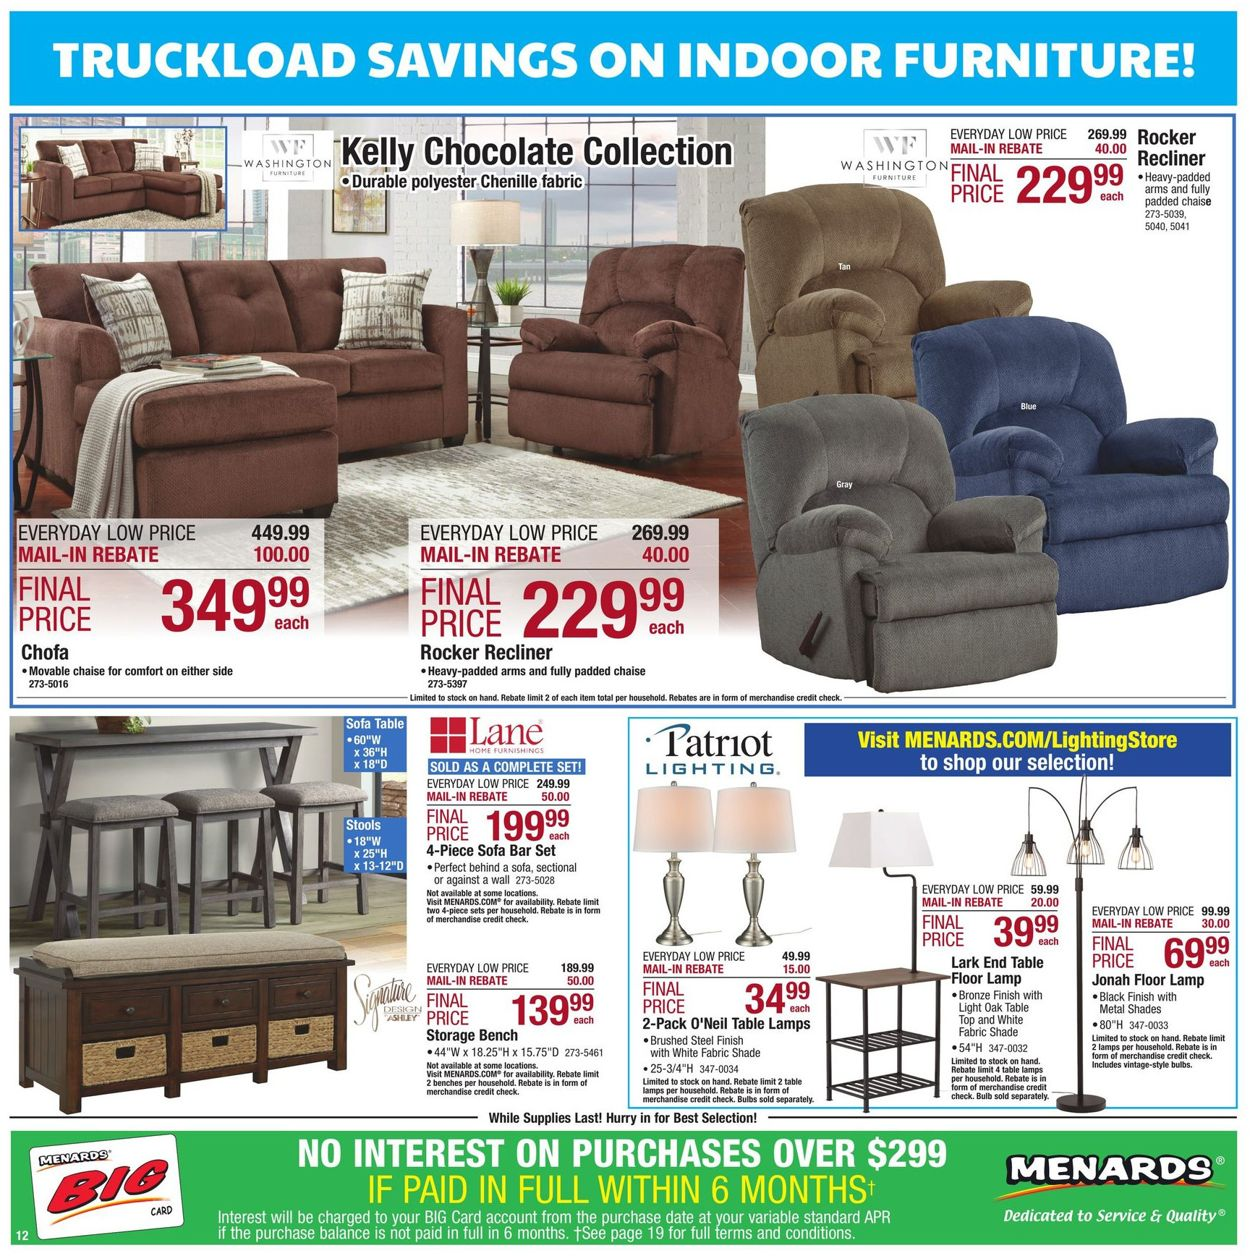 Menards Current weekly ad 12/12 - 12/12/12 [12] - frequent-ads.com